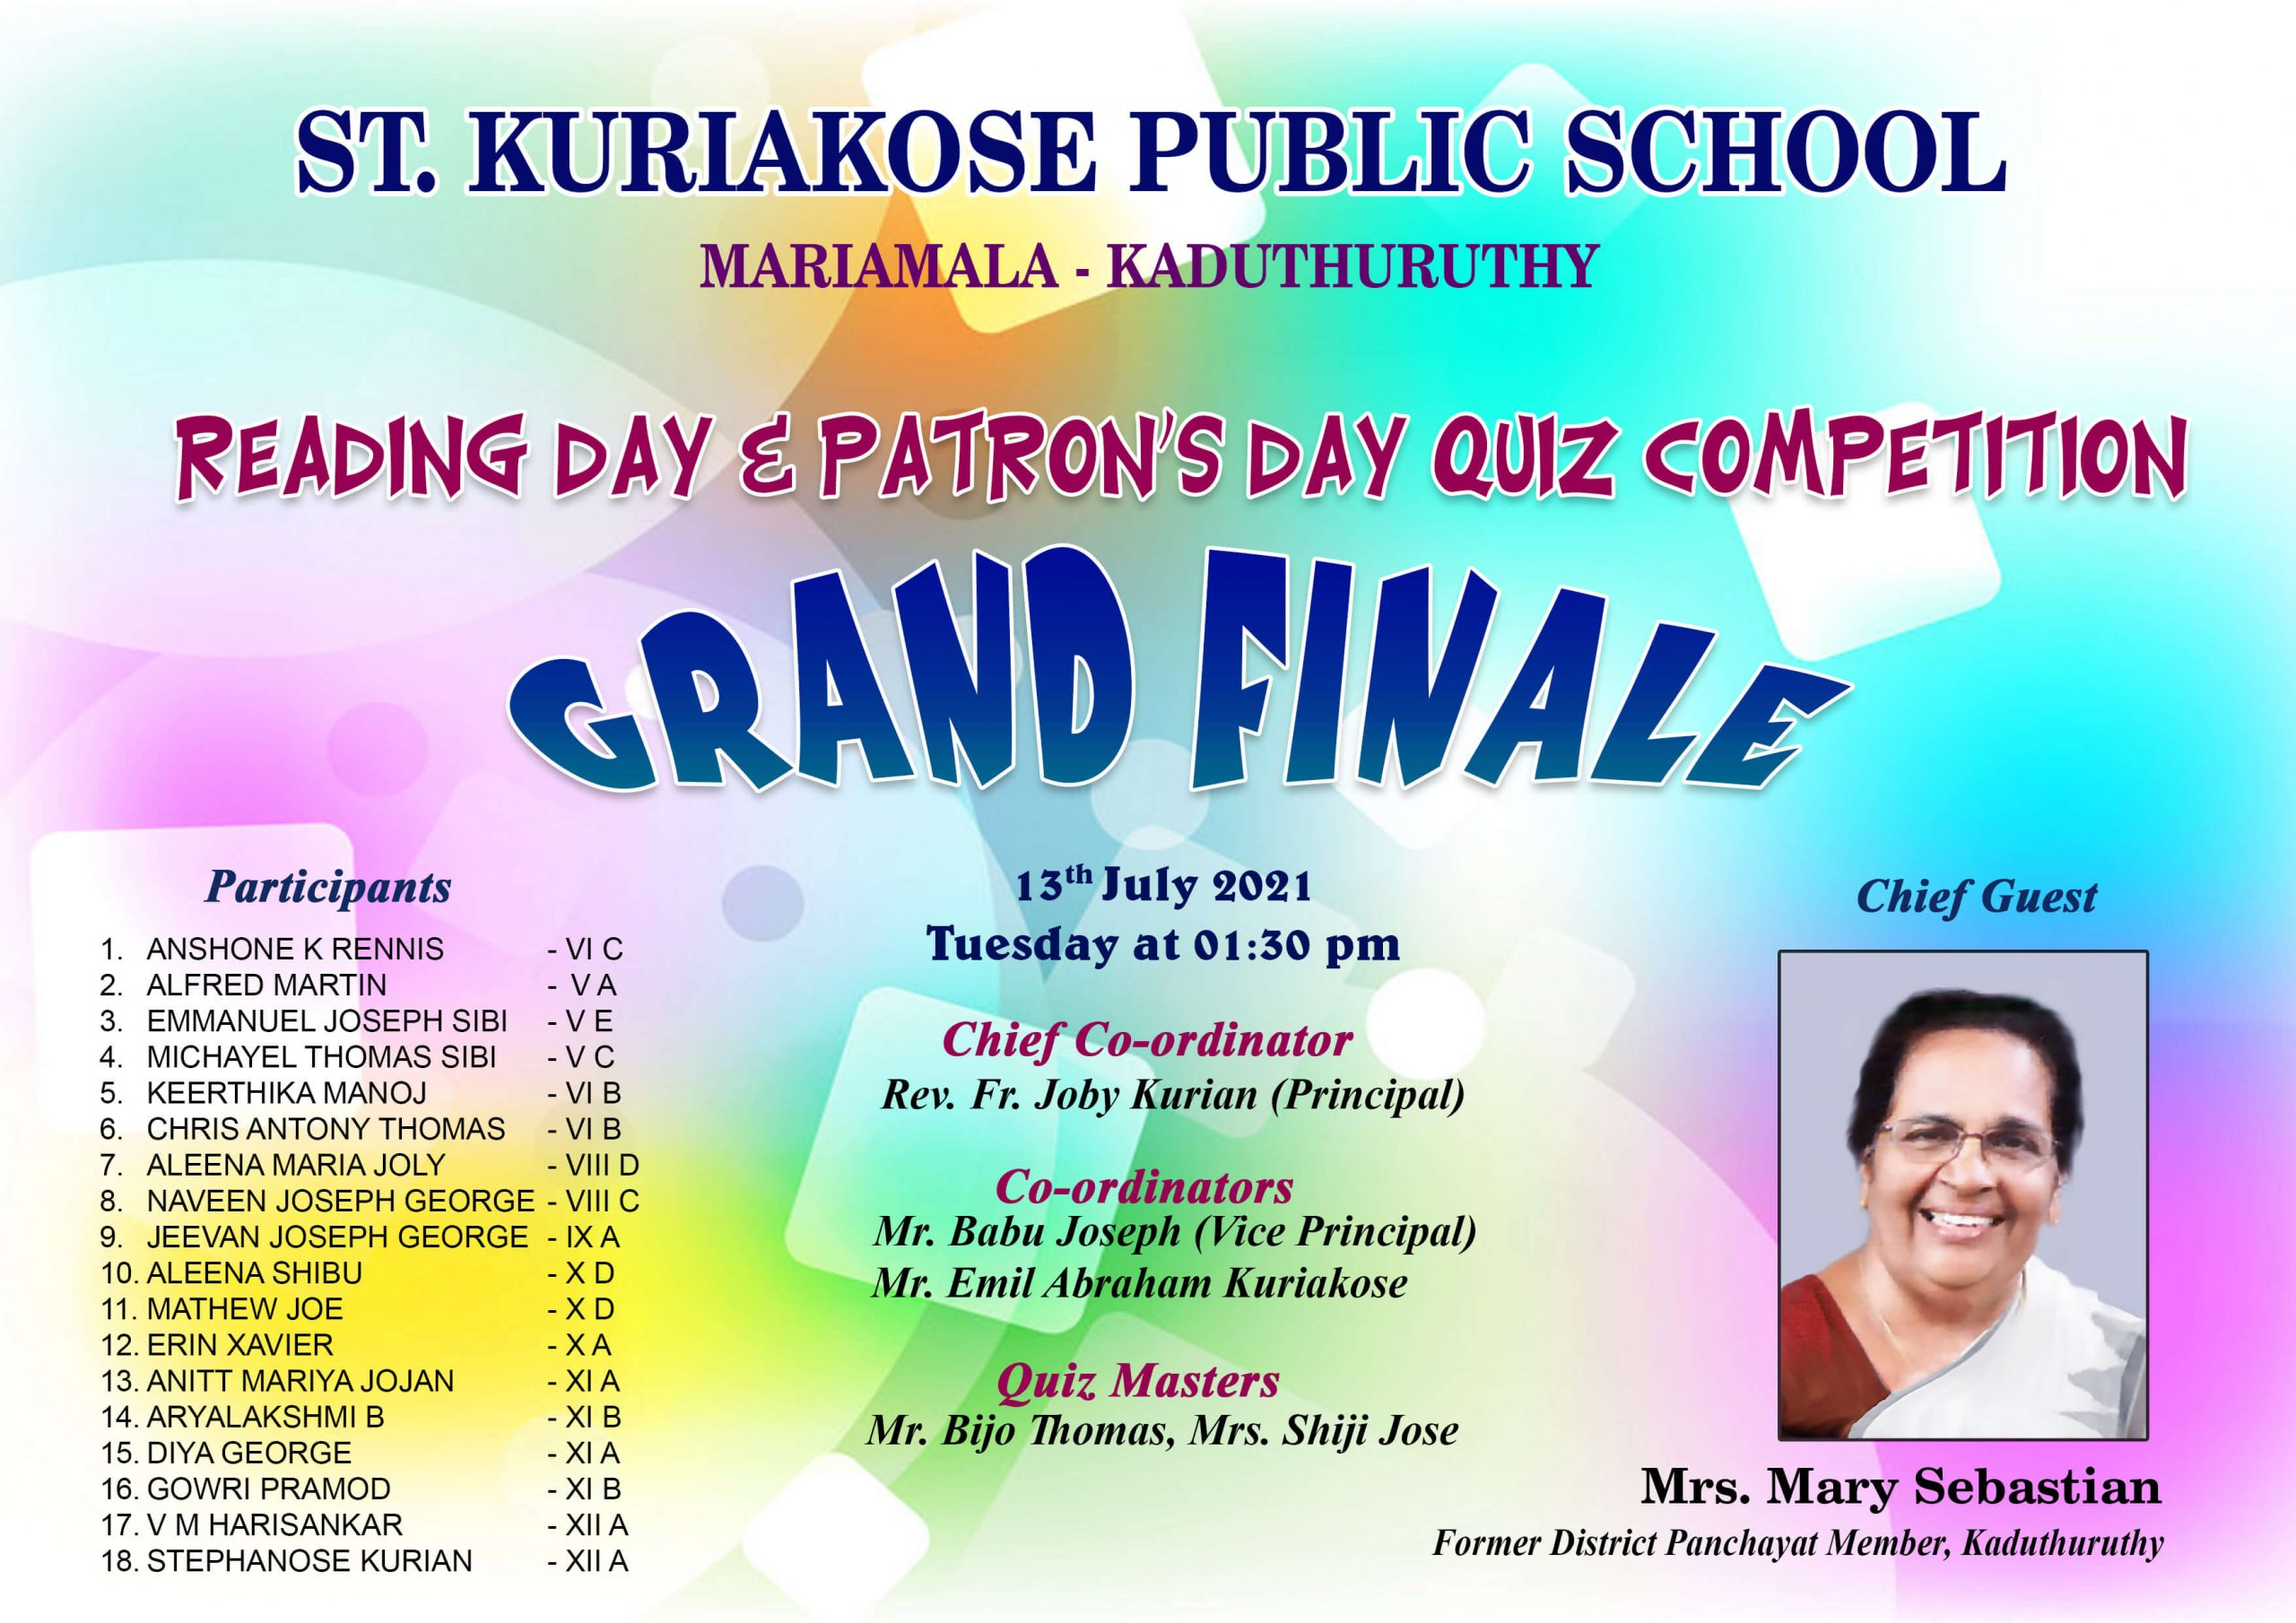 SKPS READING DAY & PATRON'S DAY QUIZ COMPETITION 2021-22